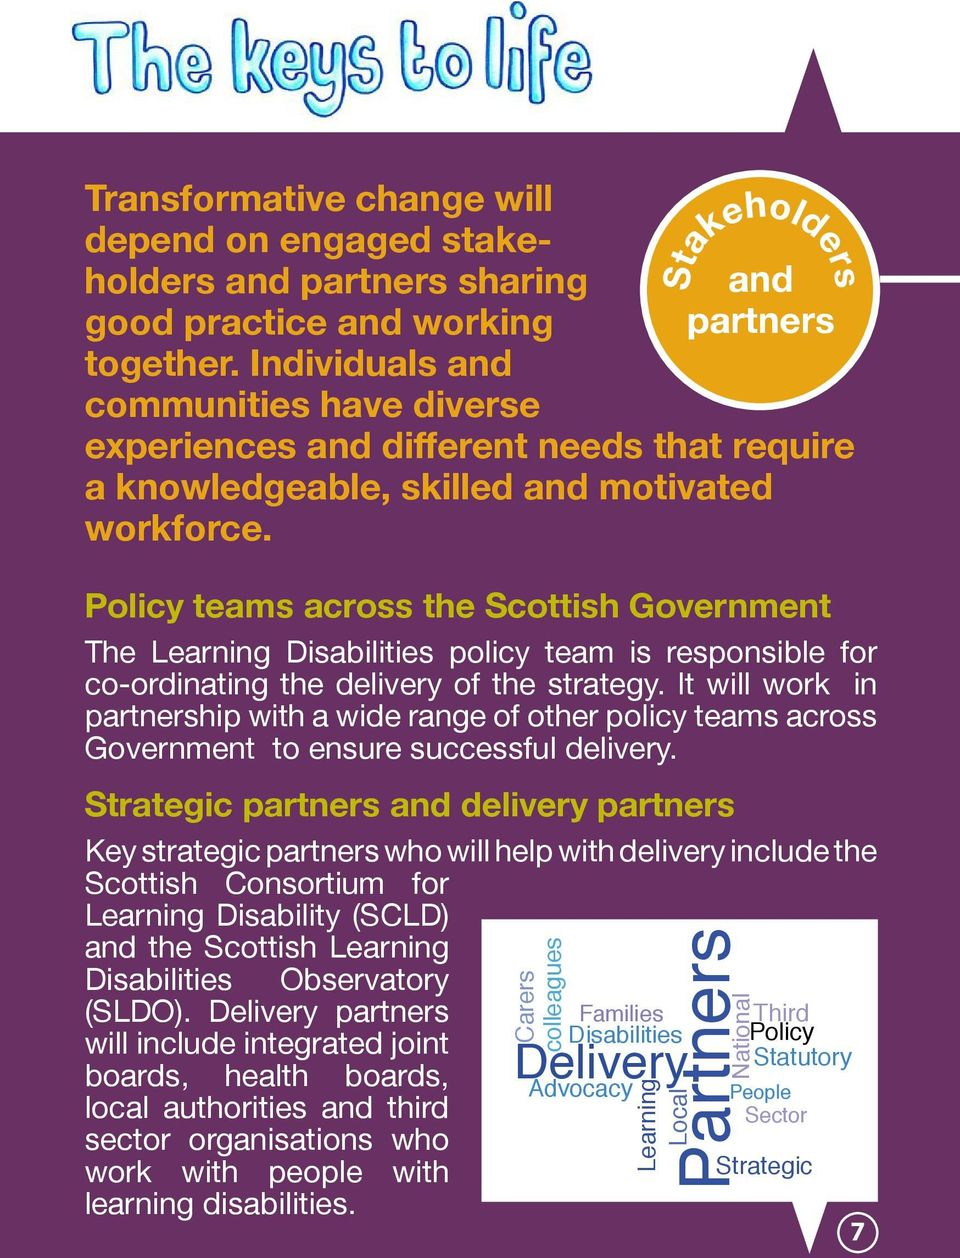 Policy teams across the Scottish Government The Learning Disabilities policy team is responsible for co-ordinating the delivery of the strategy.